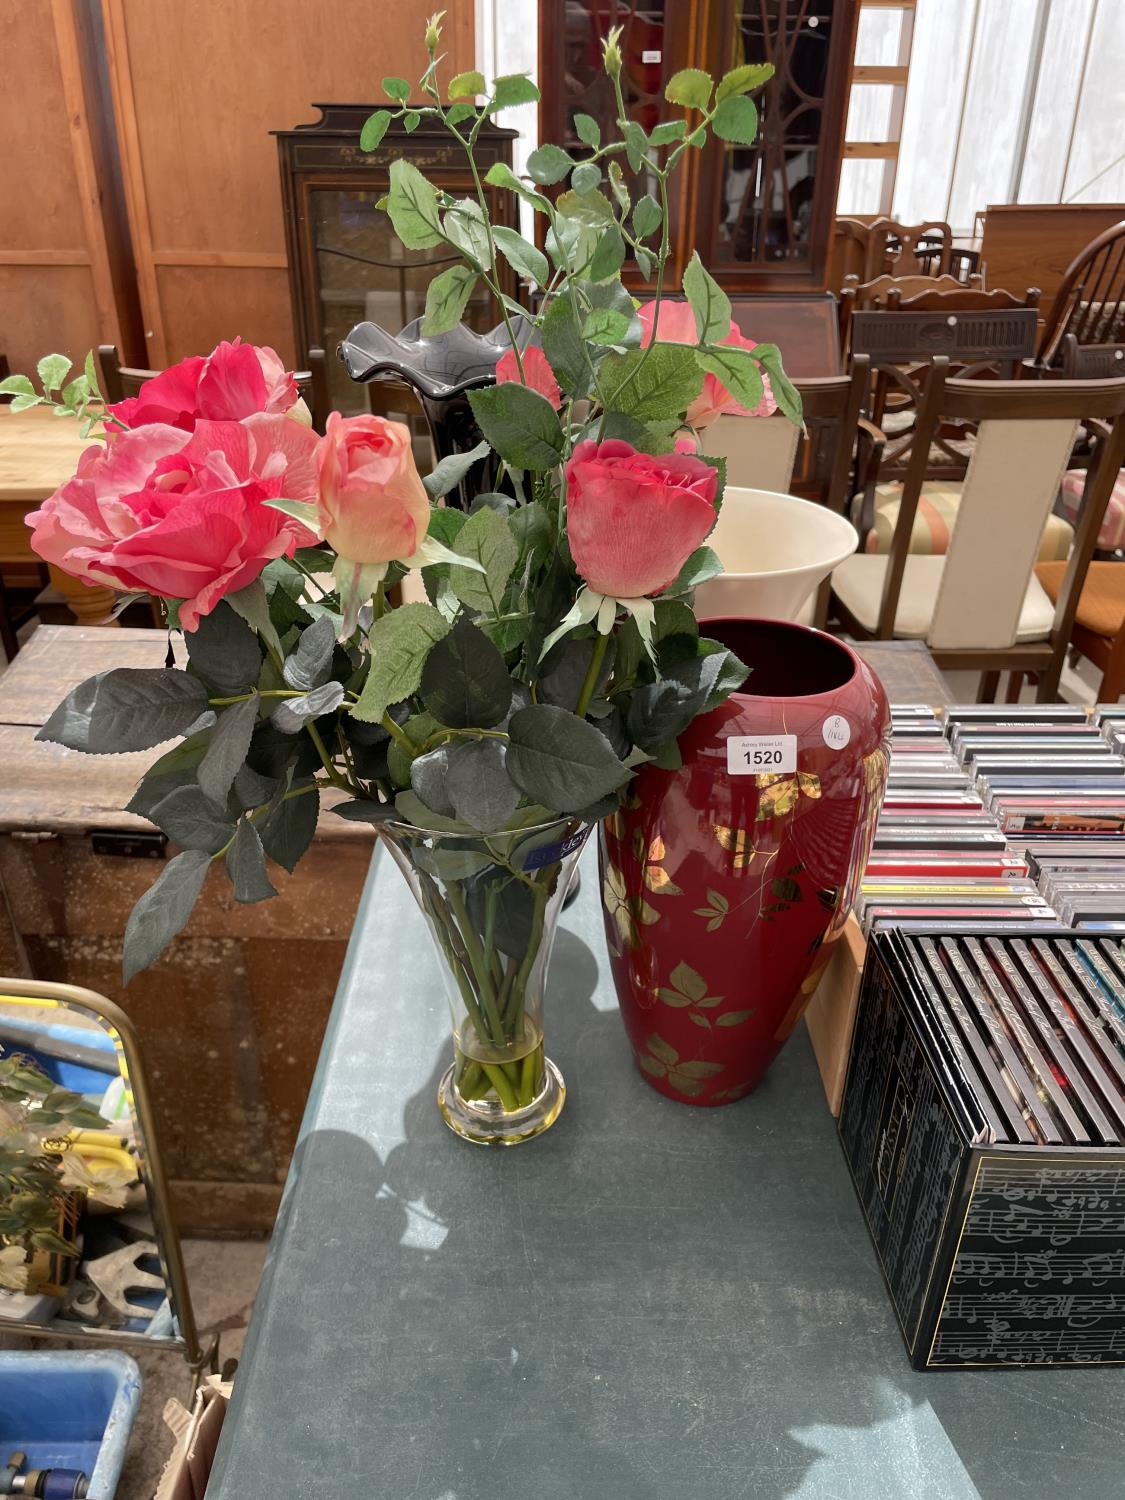 AN ASSORTMENT OF VASES TO INCLUDE ARTIFICIAL FLOWERS - Image 2 of 4